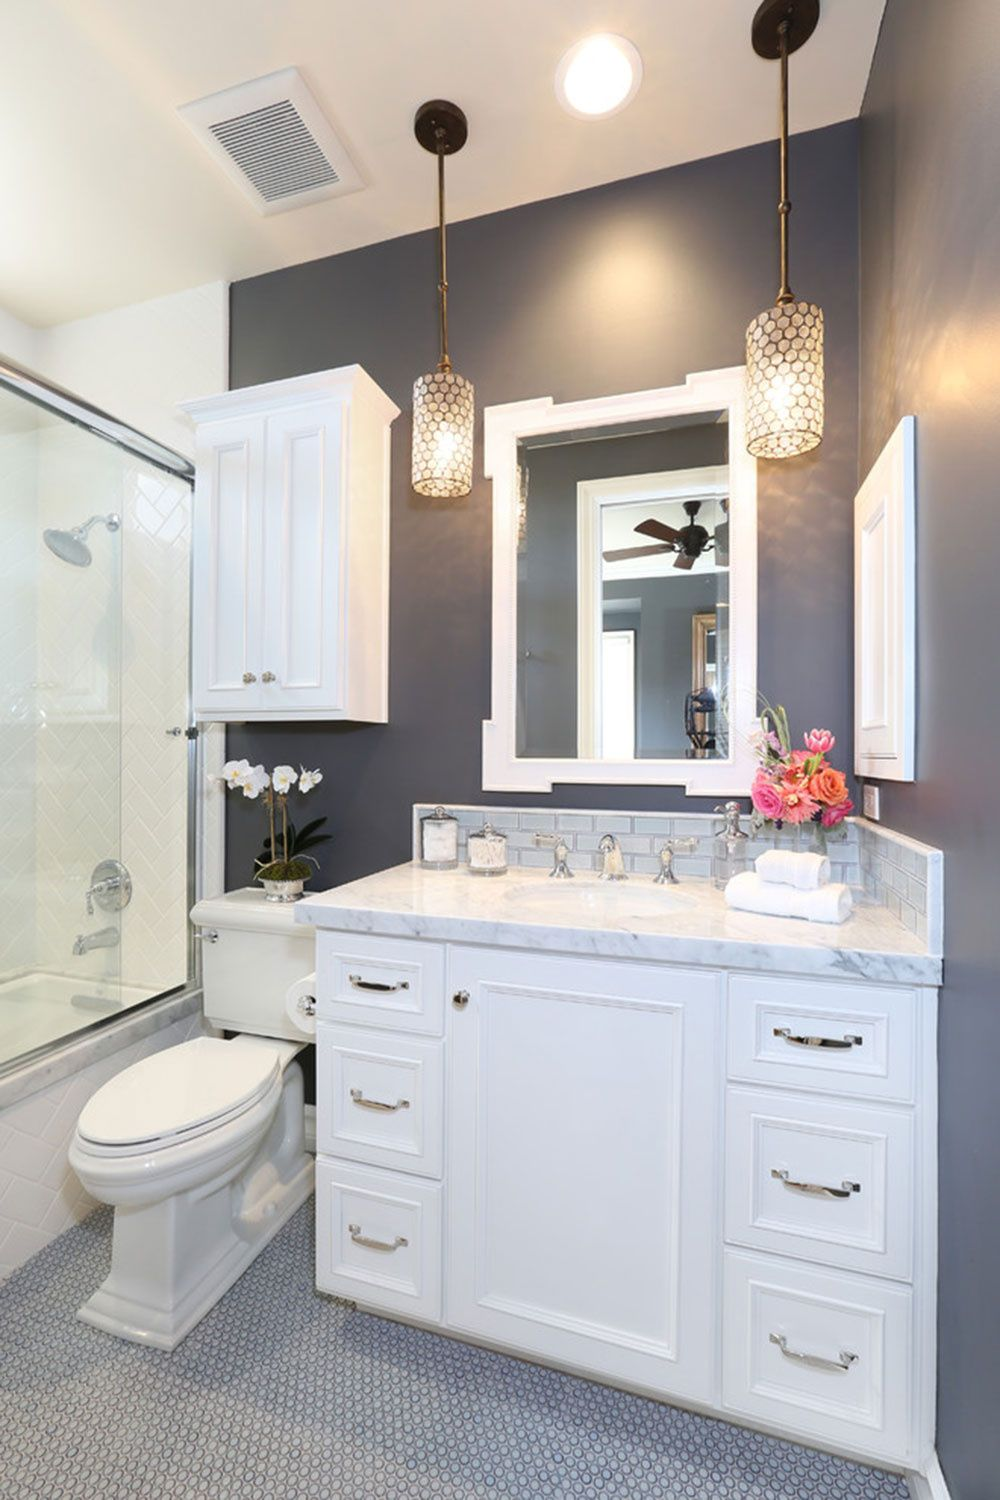 How to Make A Small Bathroom Look Larger - Interior Paint Colors ...